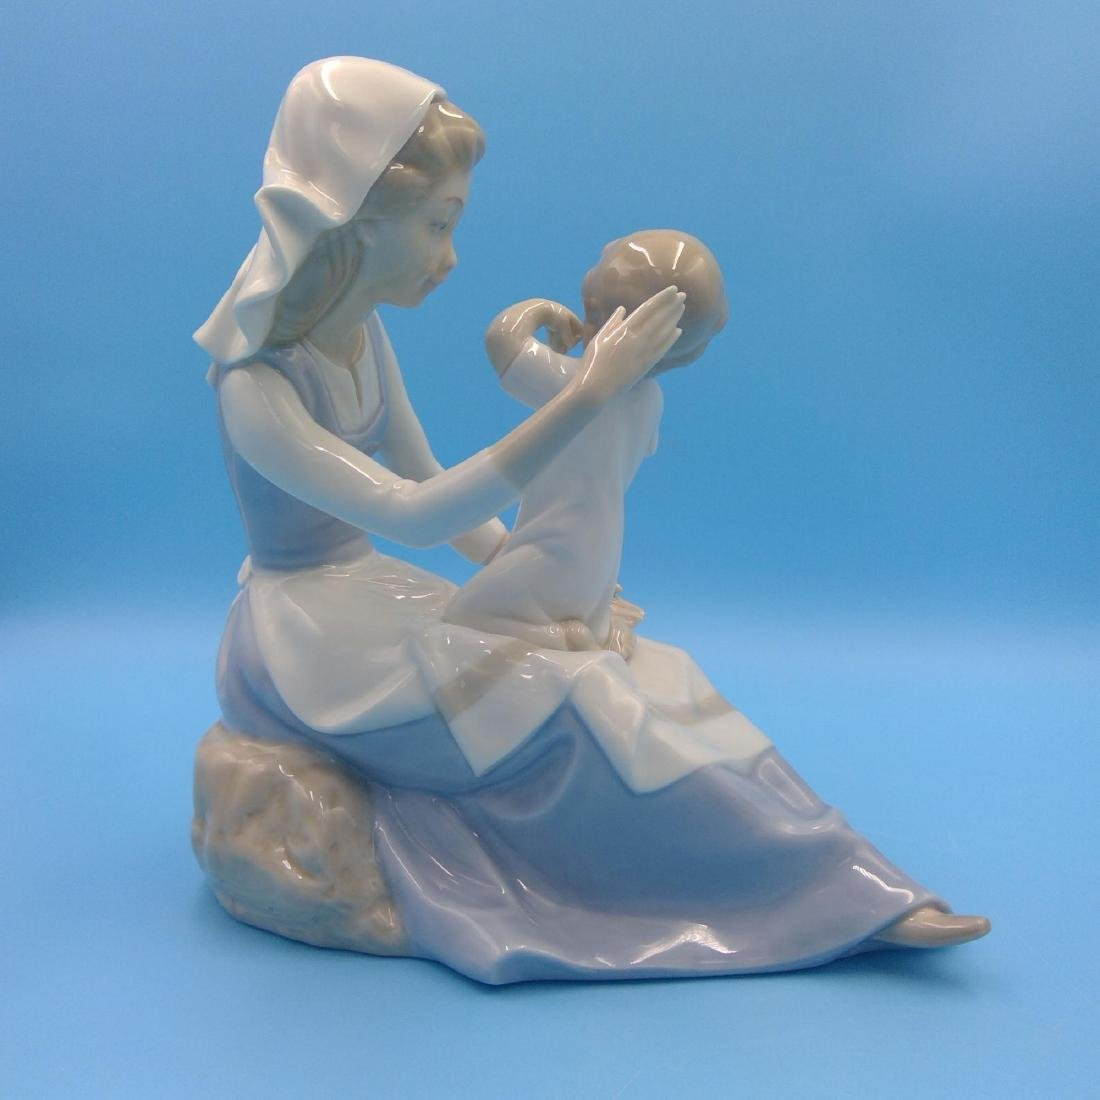 GROUP OF 3 SPANISH PORCELAIN FIGURINES - 7